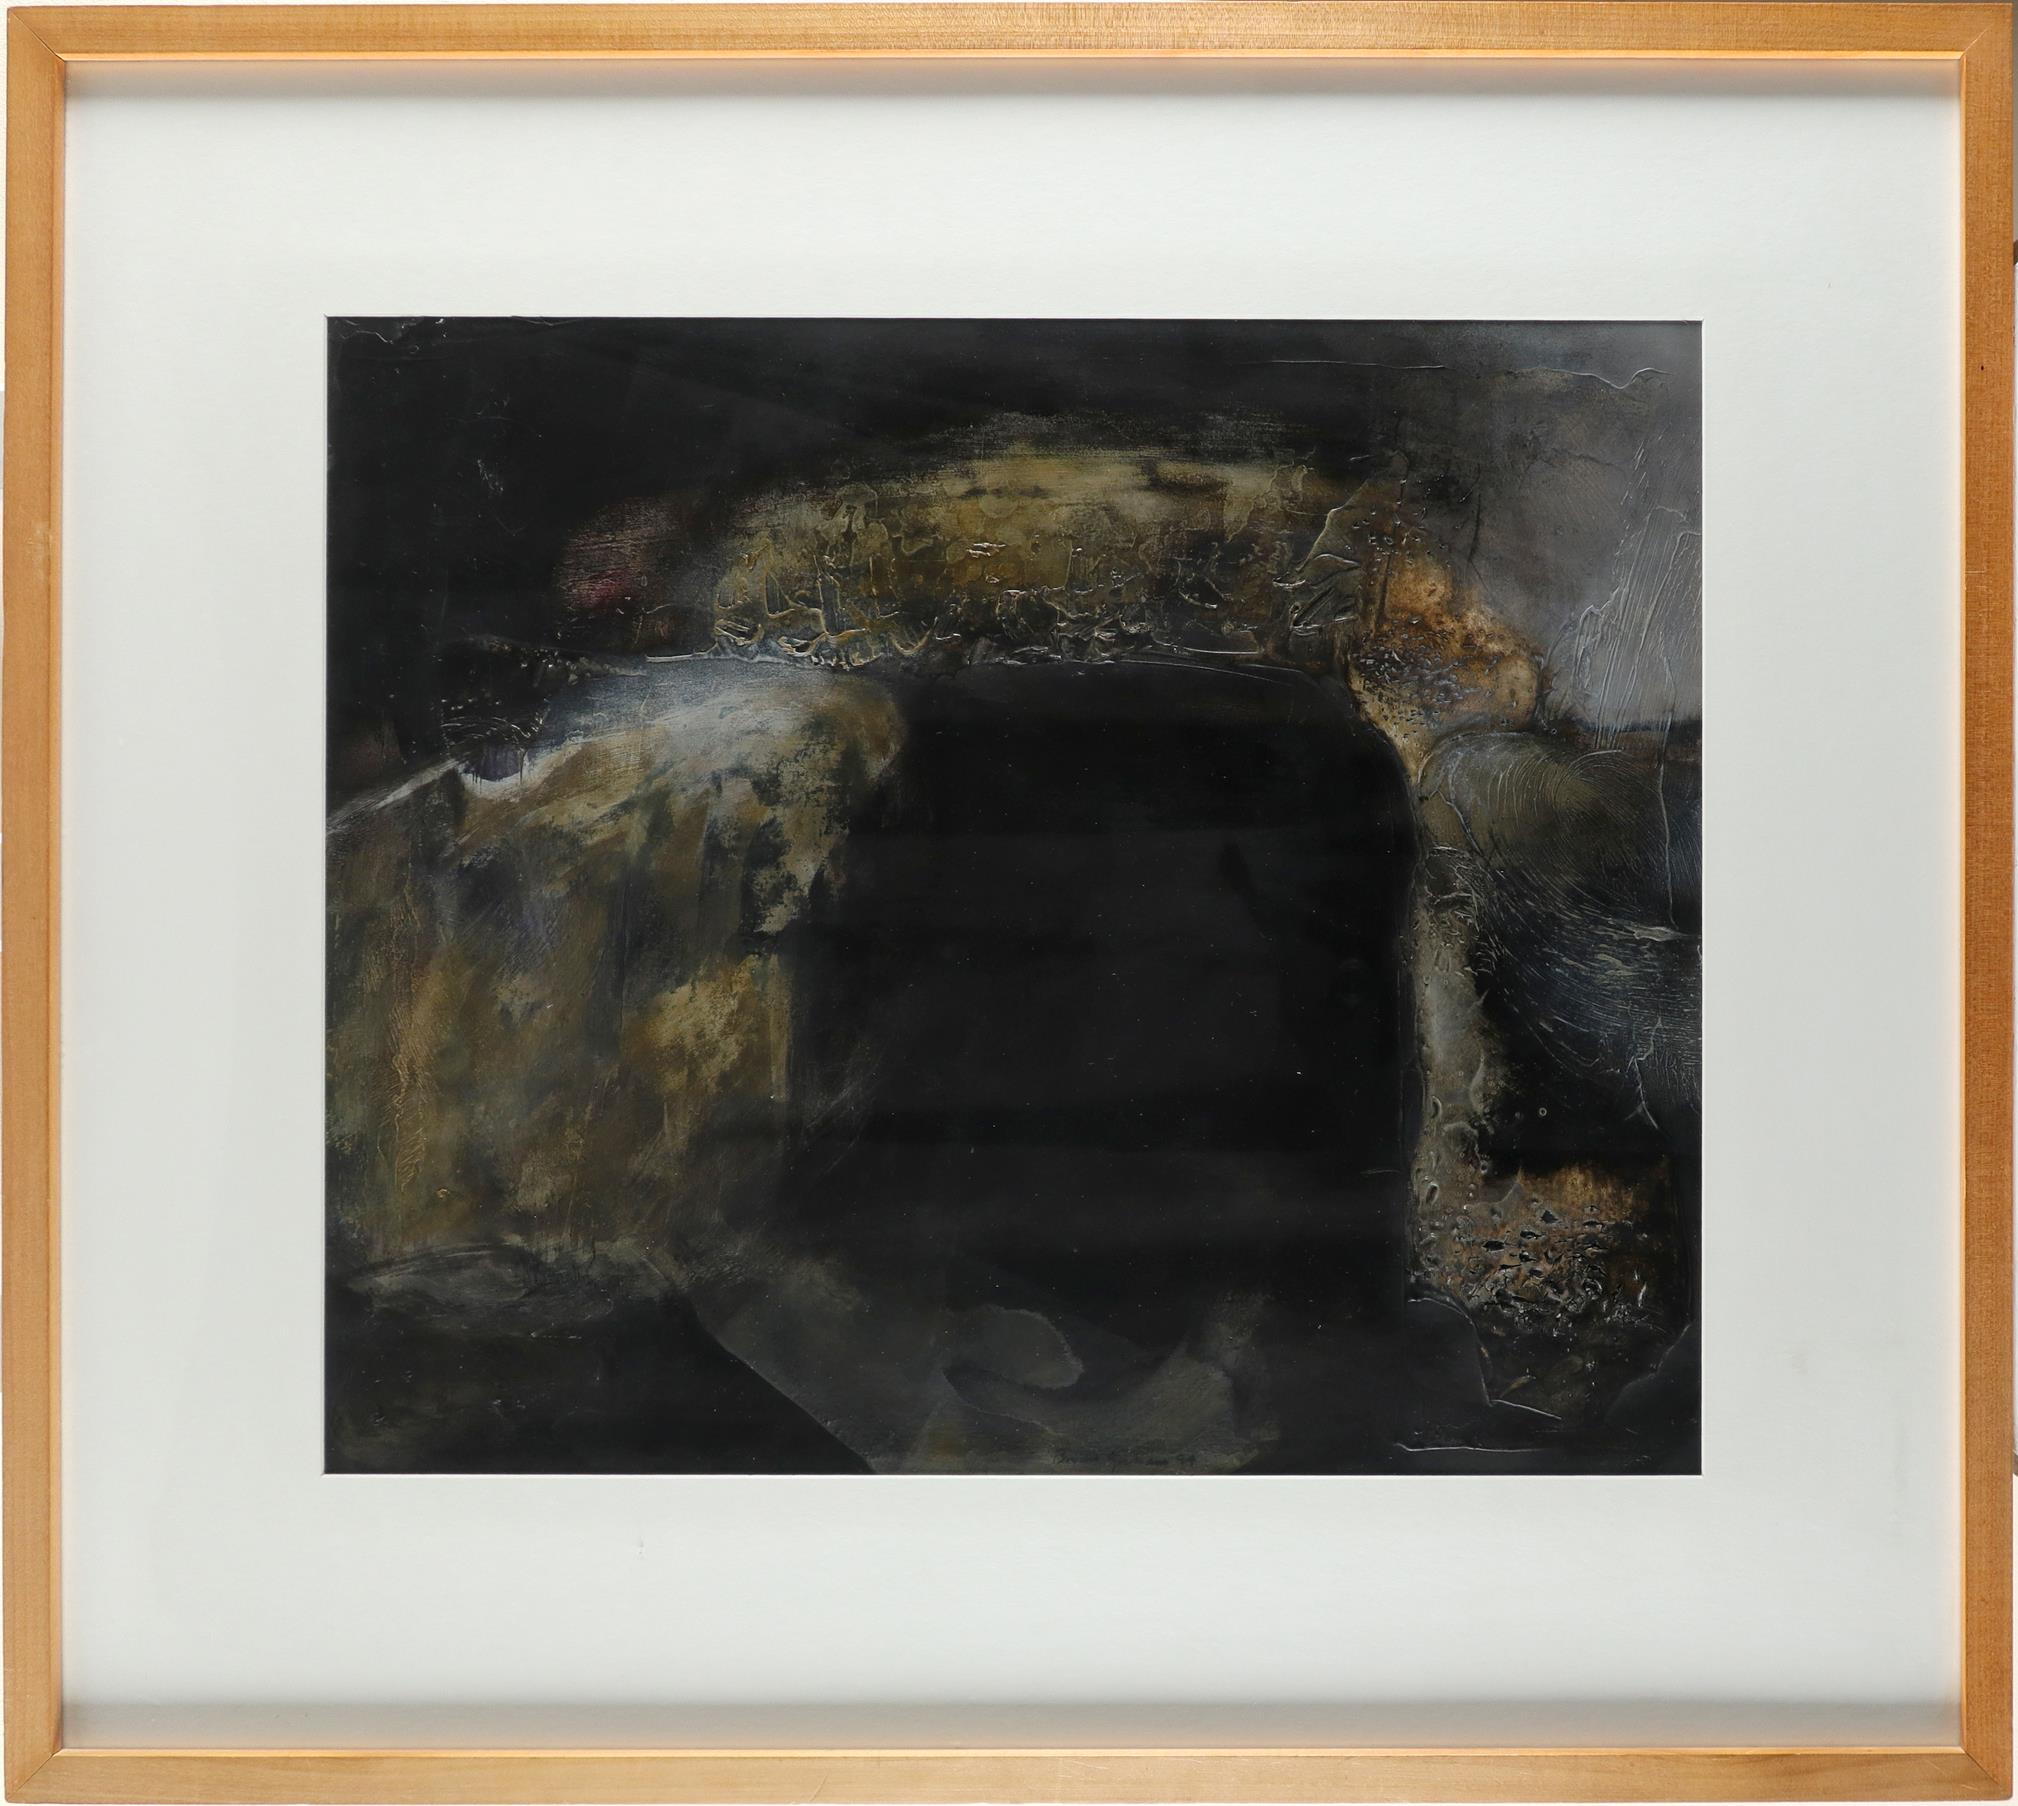 ‡Brian Graham (b.1945) A dolmen at night Signed and dated Brian Graham 94 (lower centre) Acrylic - Image 2 of 3